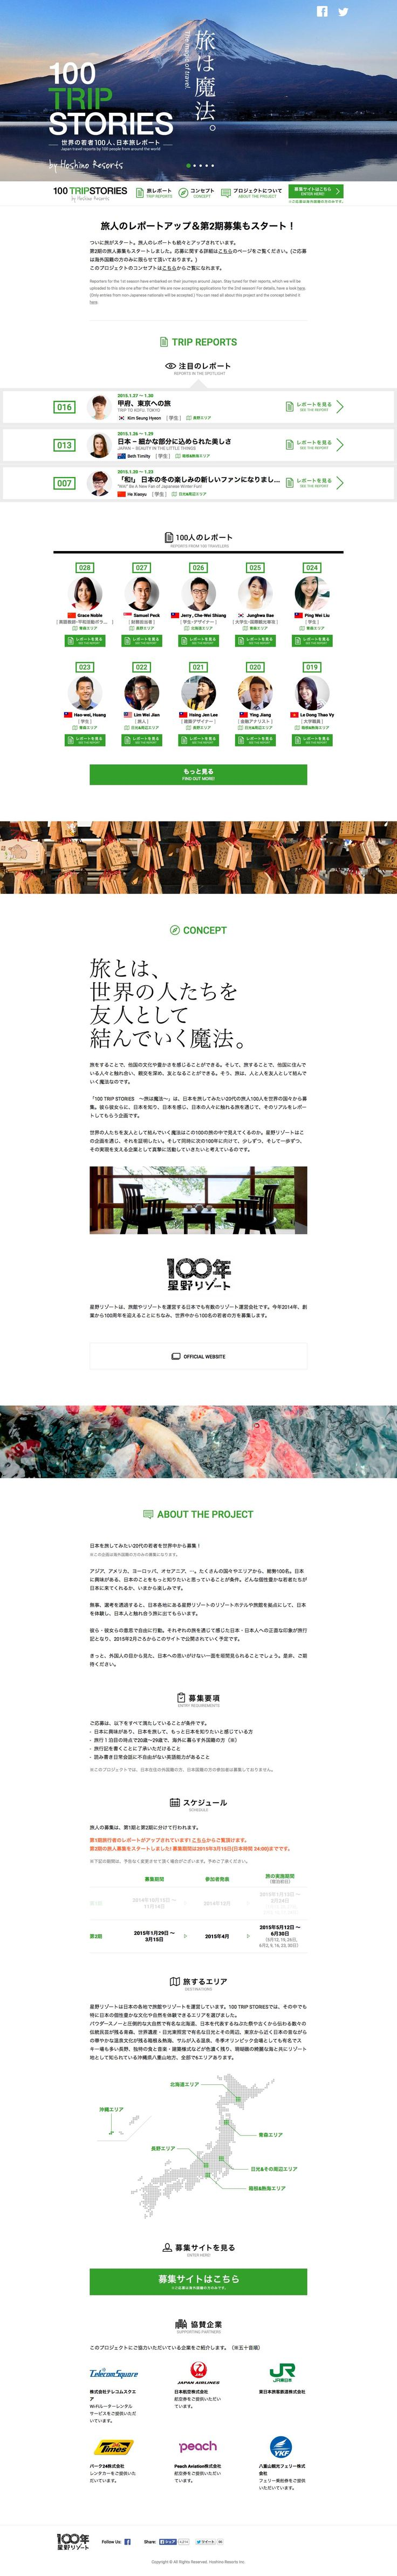 HOSHINO Resort website http://hoshinoresort.com/100stories/